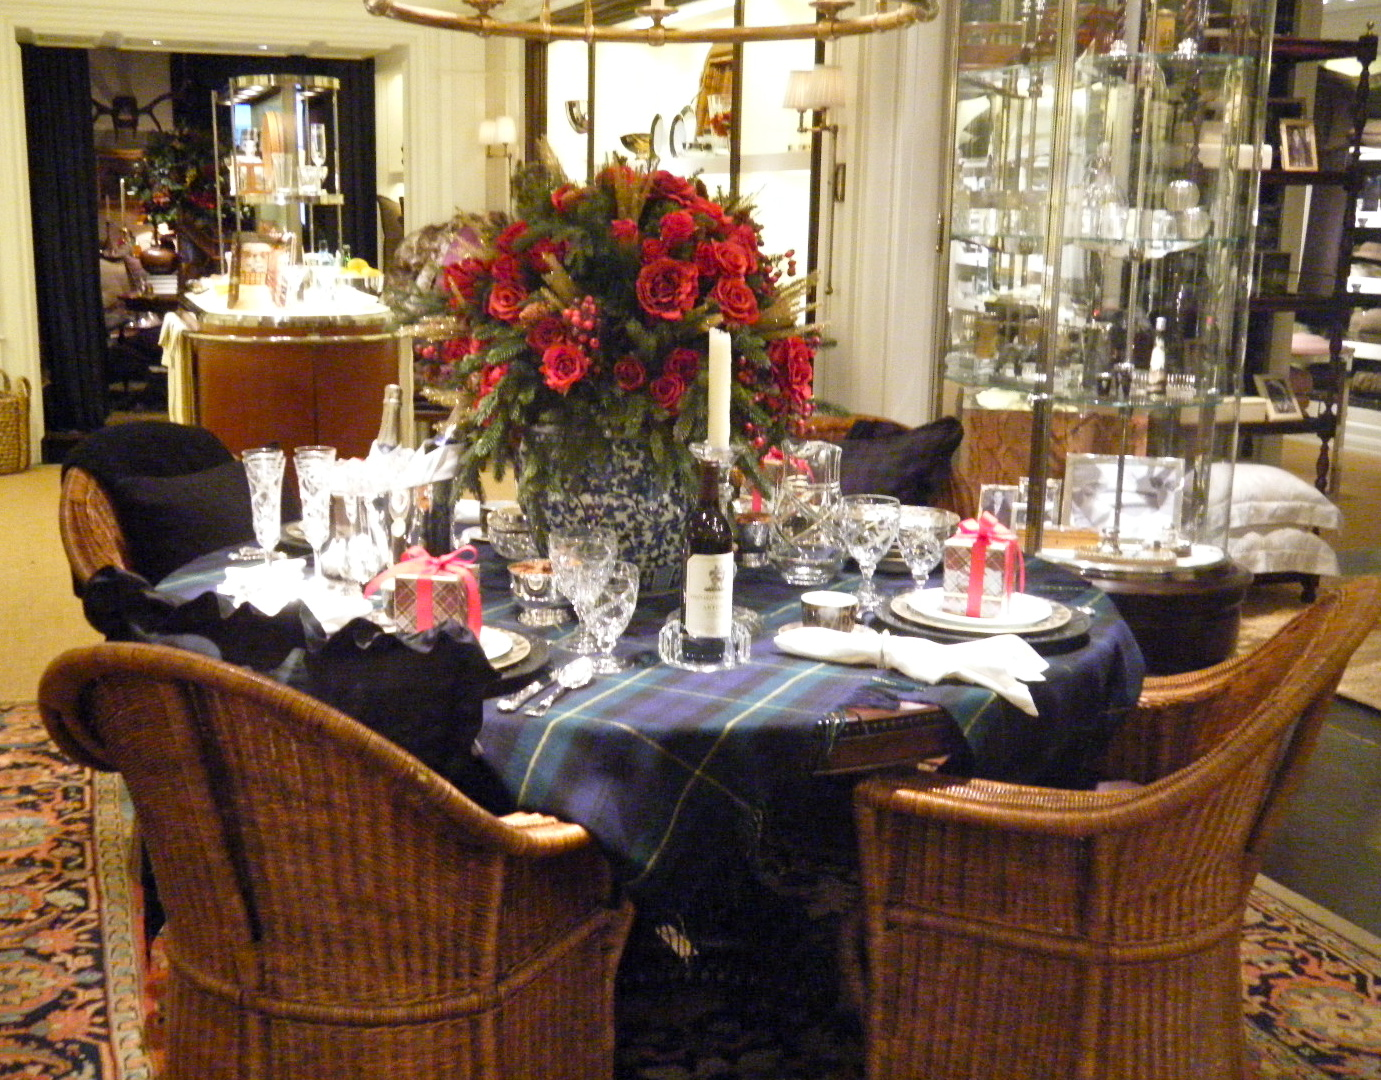 DSCF2616 - Ralph Lauren's Christmas Table